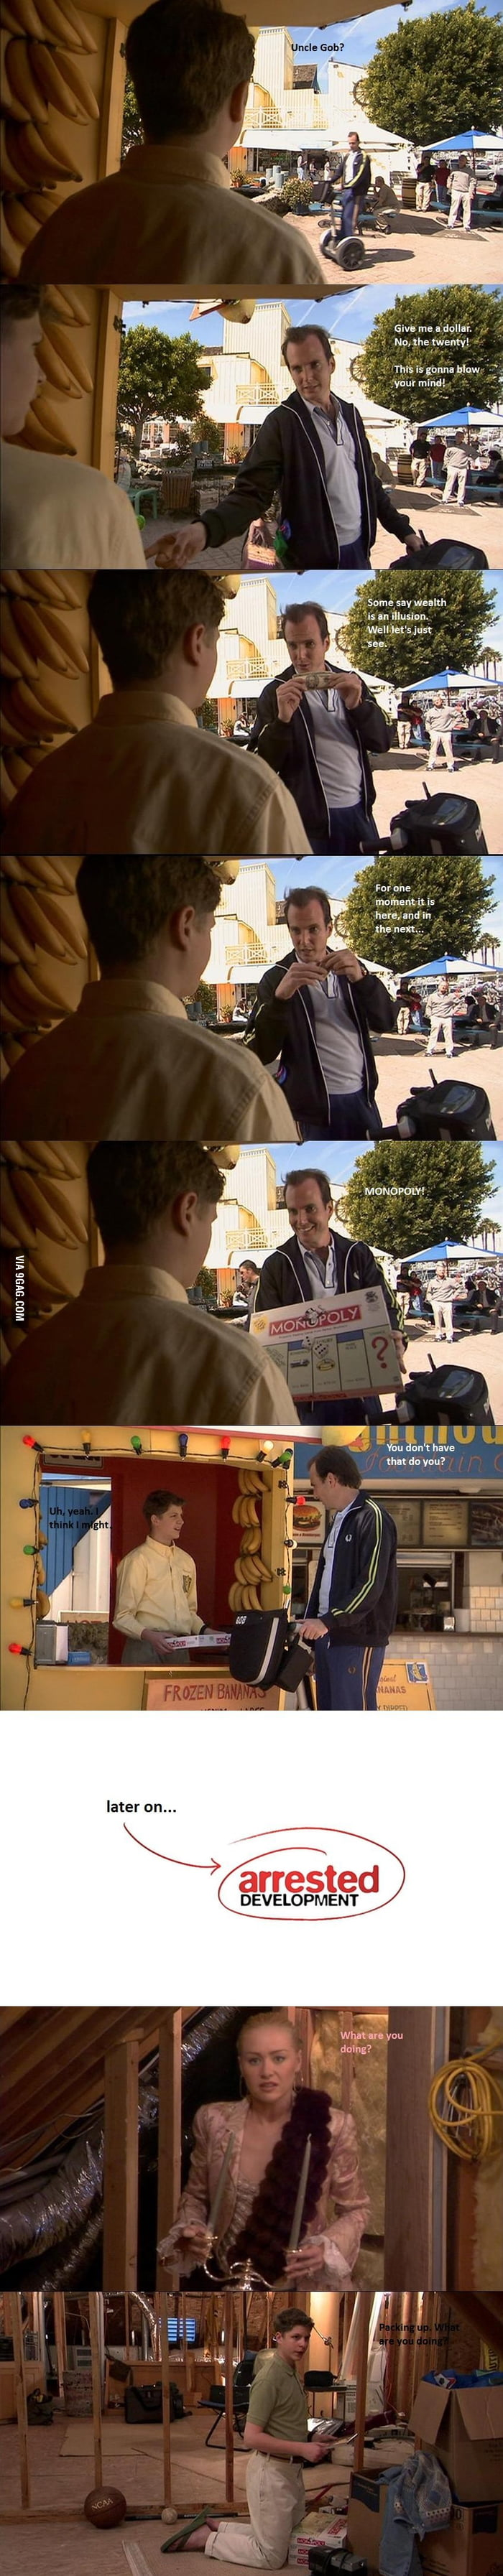 Went back to watch Arrested Development and found this little gem in the Pilot